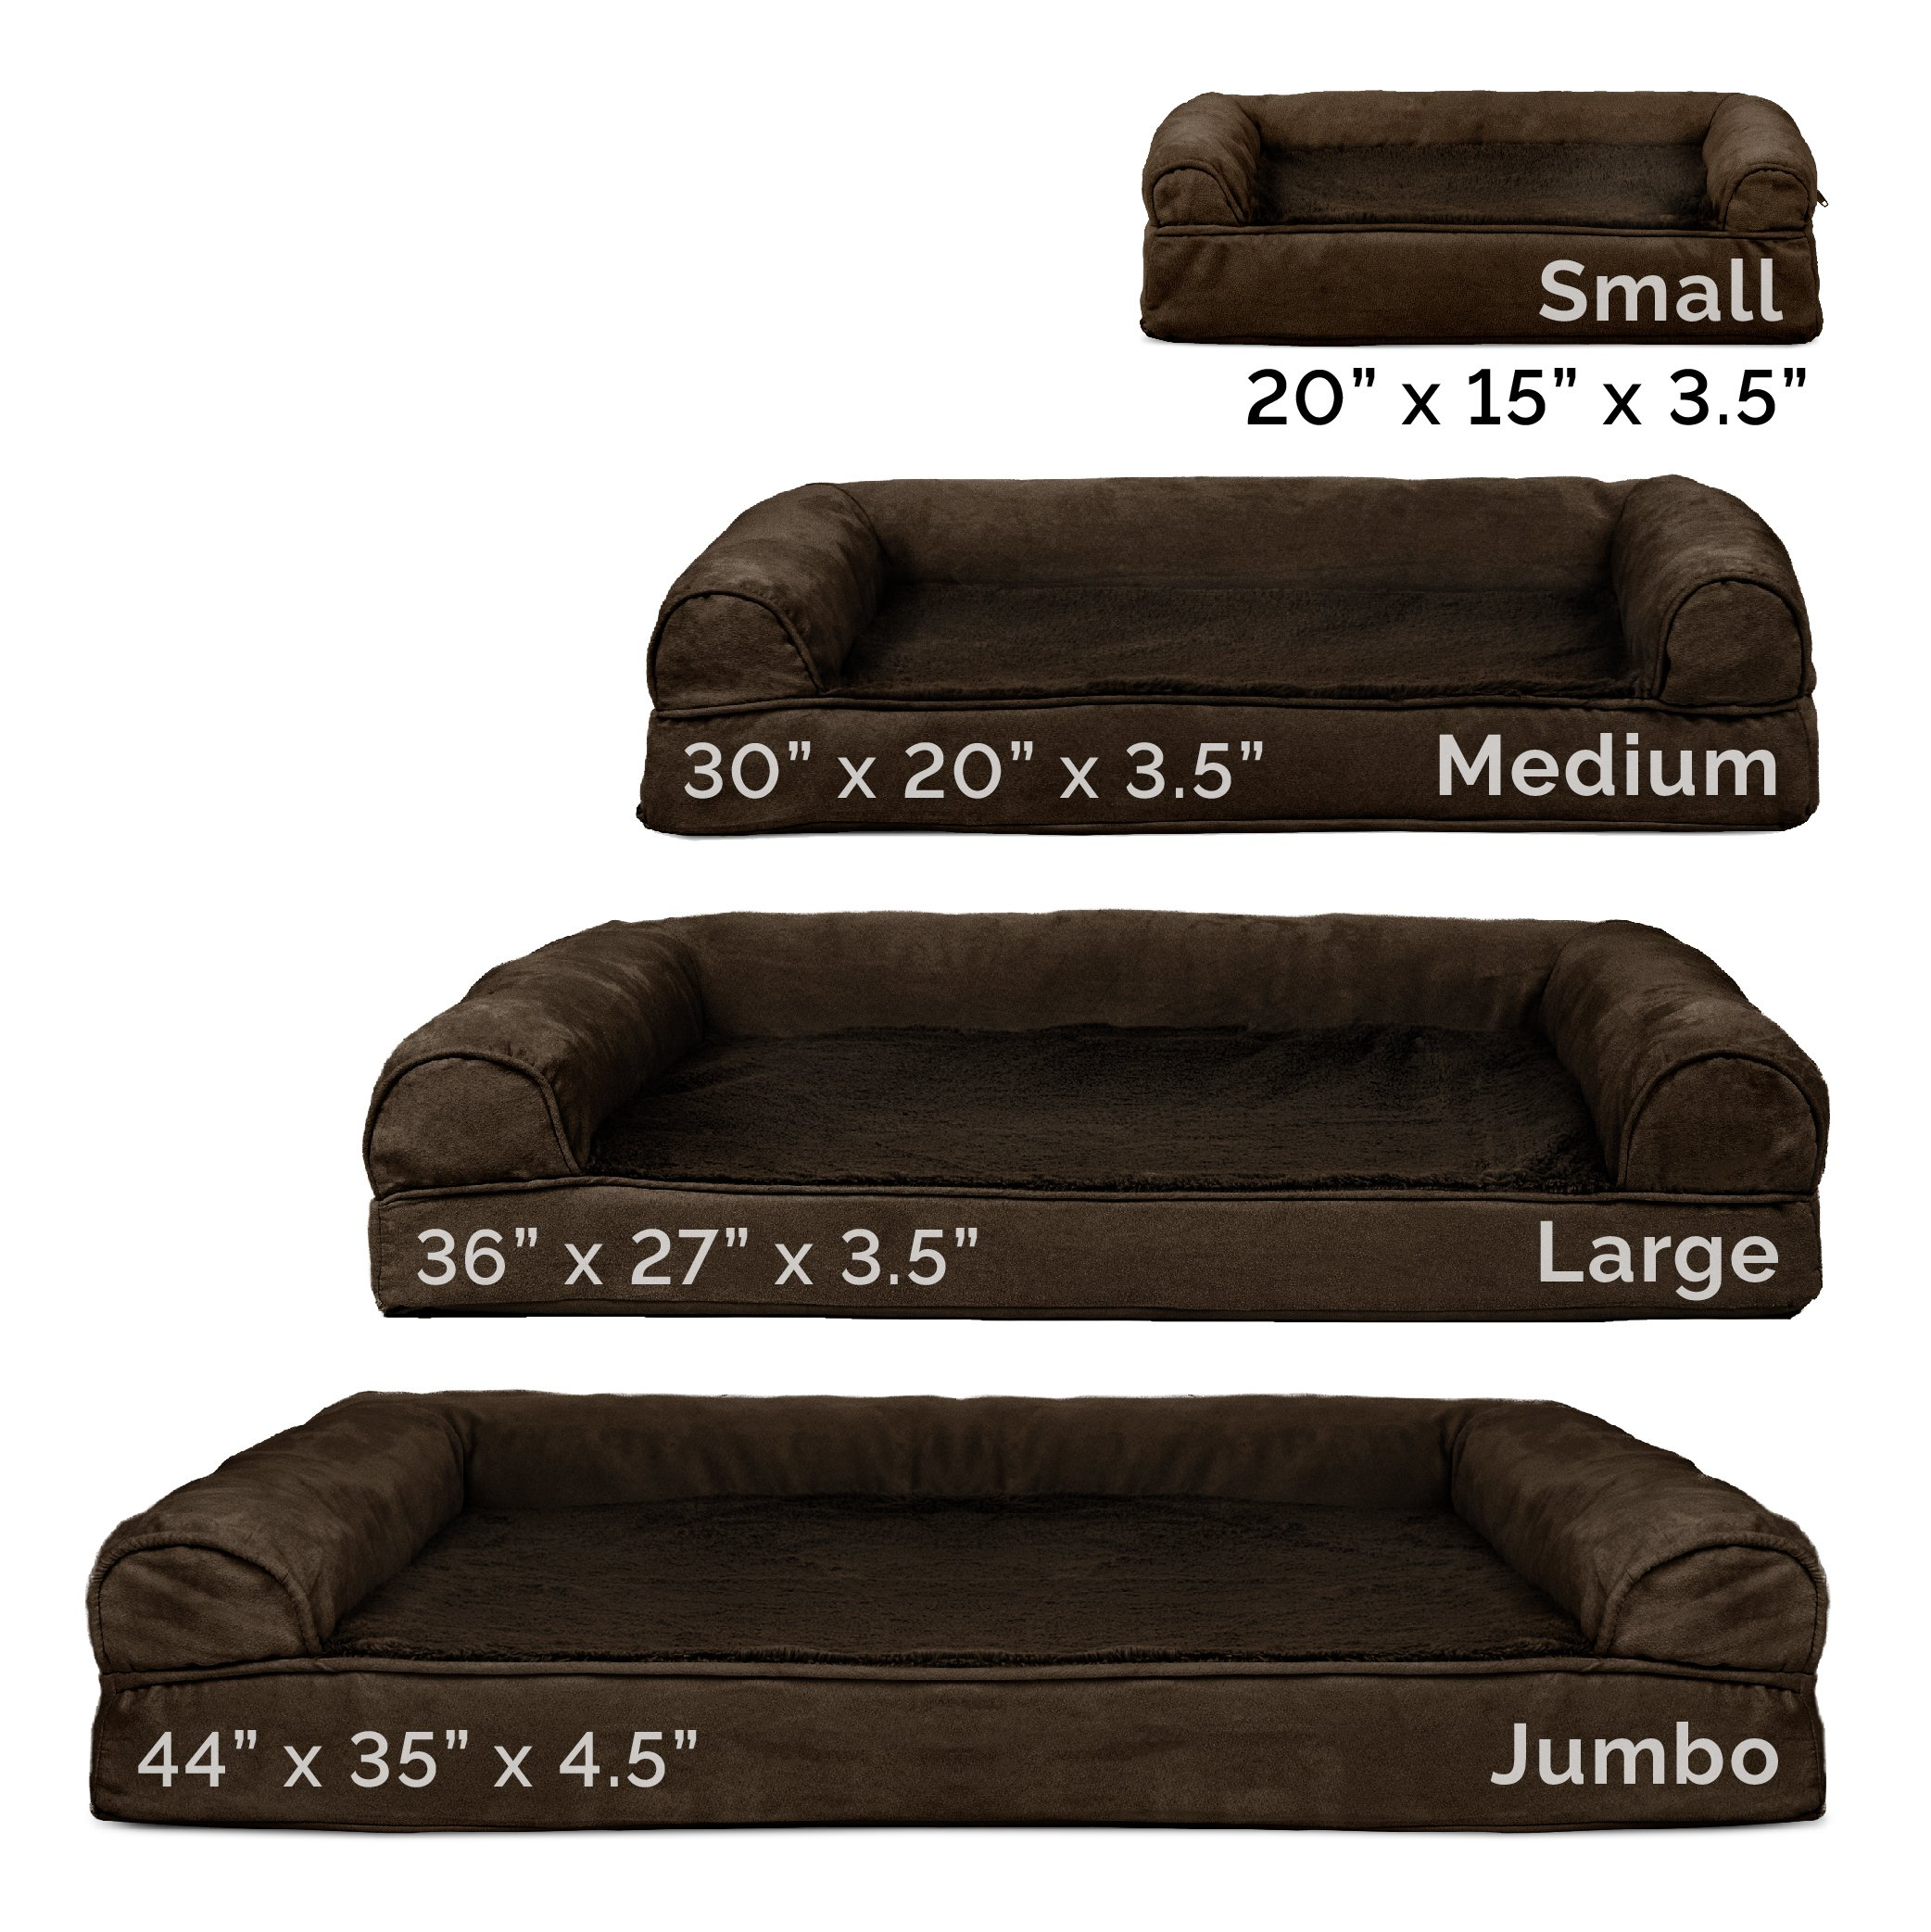 FurHaven Orthopedic Ultra Plush & Velvet Sofa-Style Couch Pet Bed for Dogs and Cats, Espresso, Large by Furhaven Pet (Image #8)